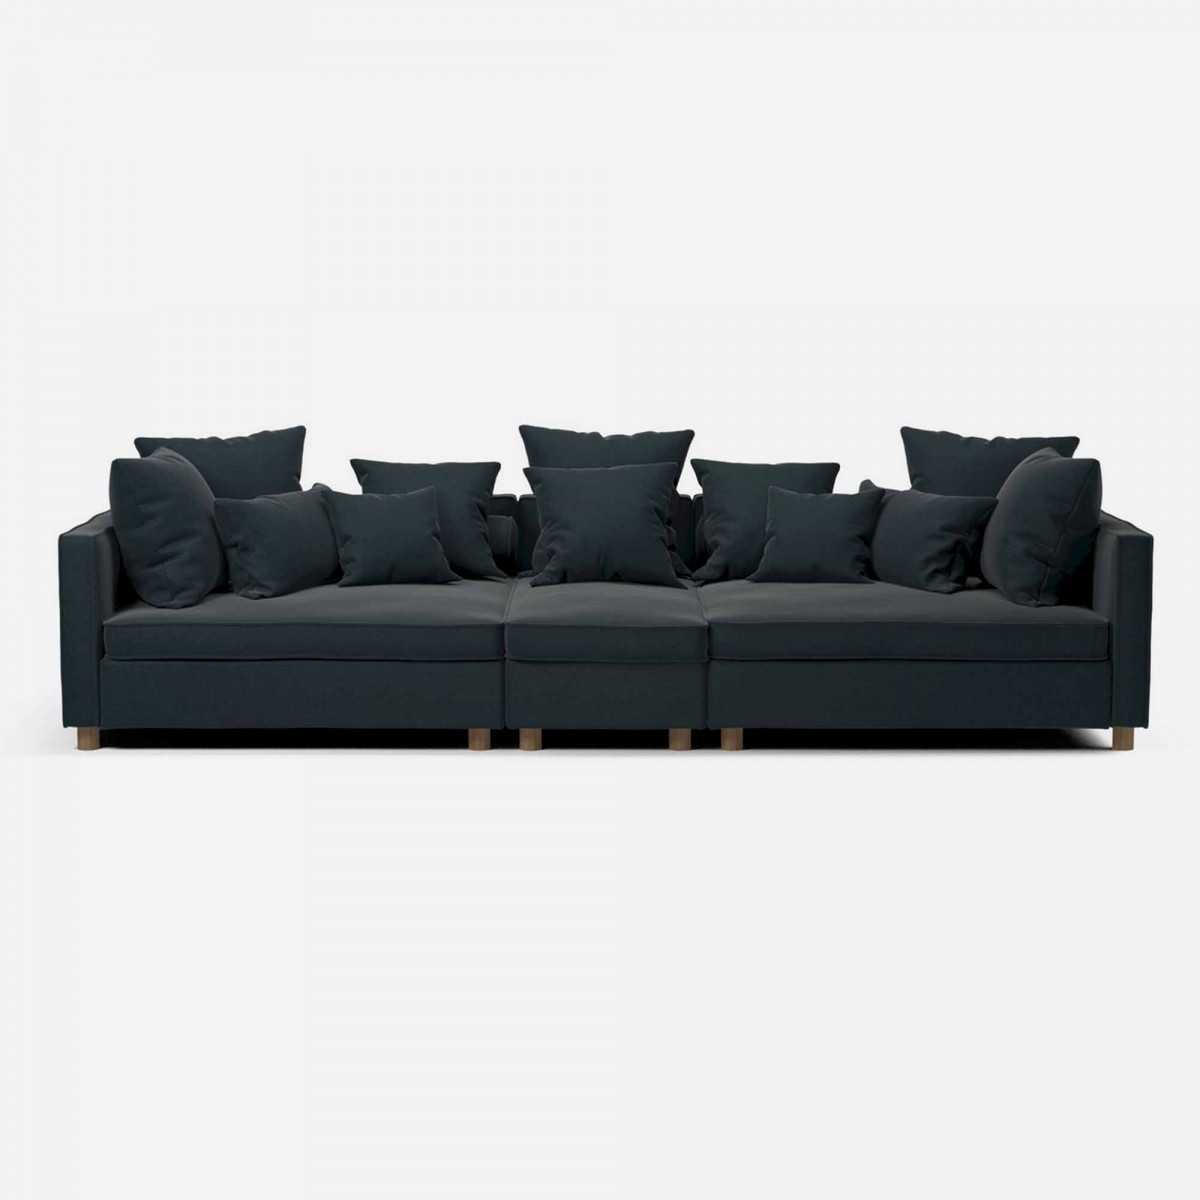 Big Couch Mr Big Sofa 3 Units S Bolia